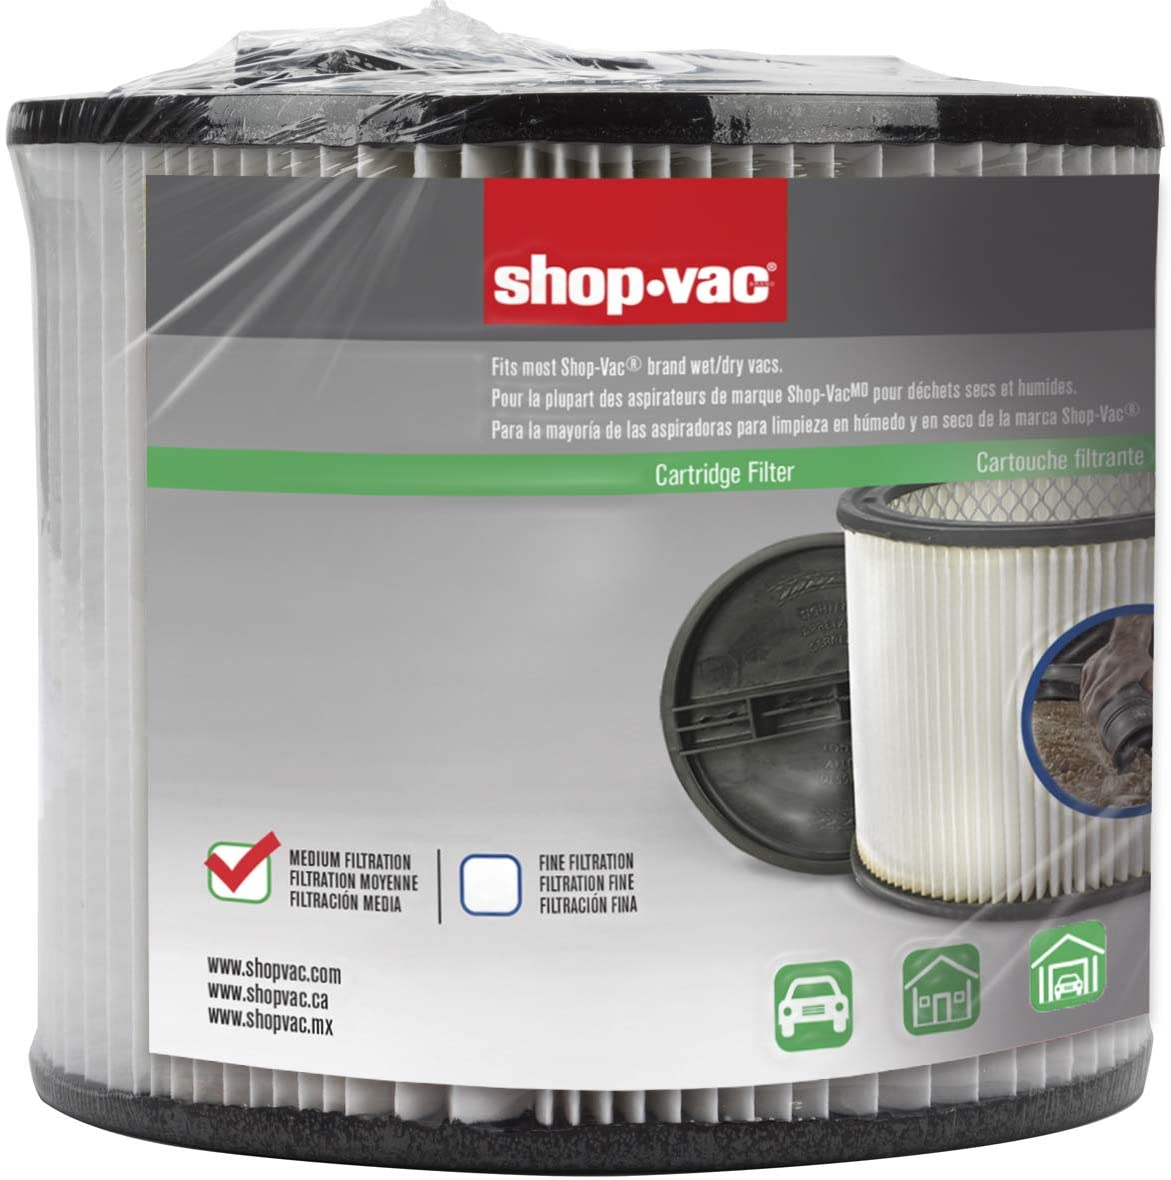 Shop-Vac 90304 Genuine Cartridge Filter, Single Pack